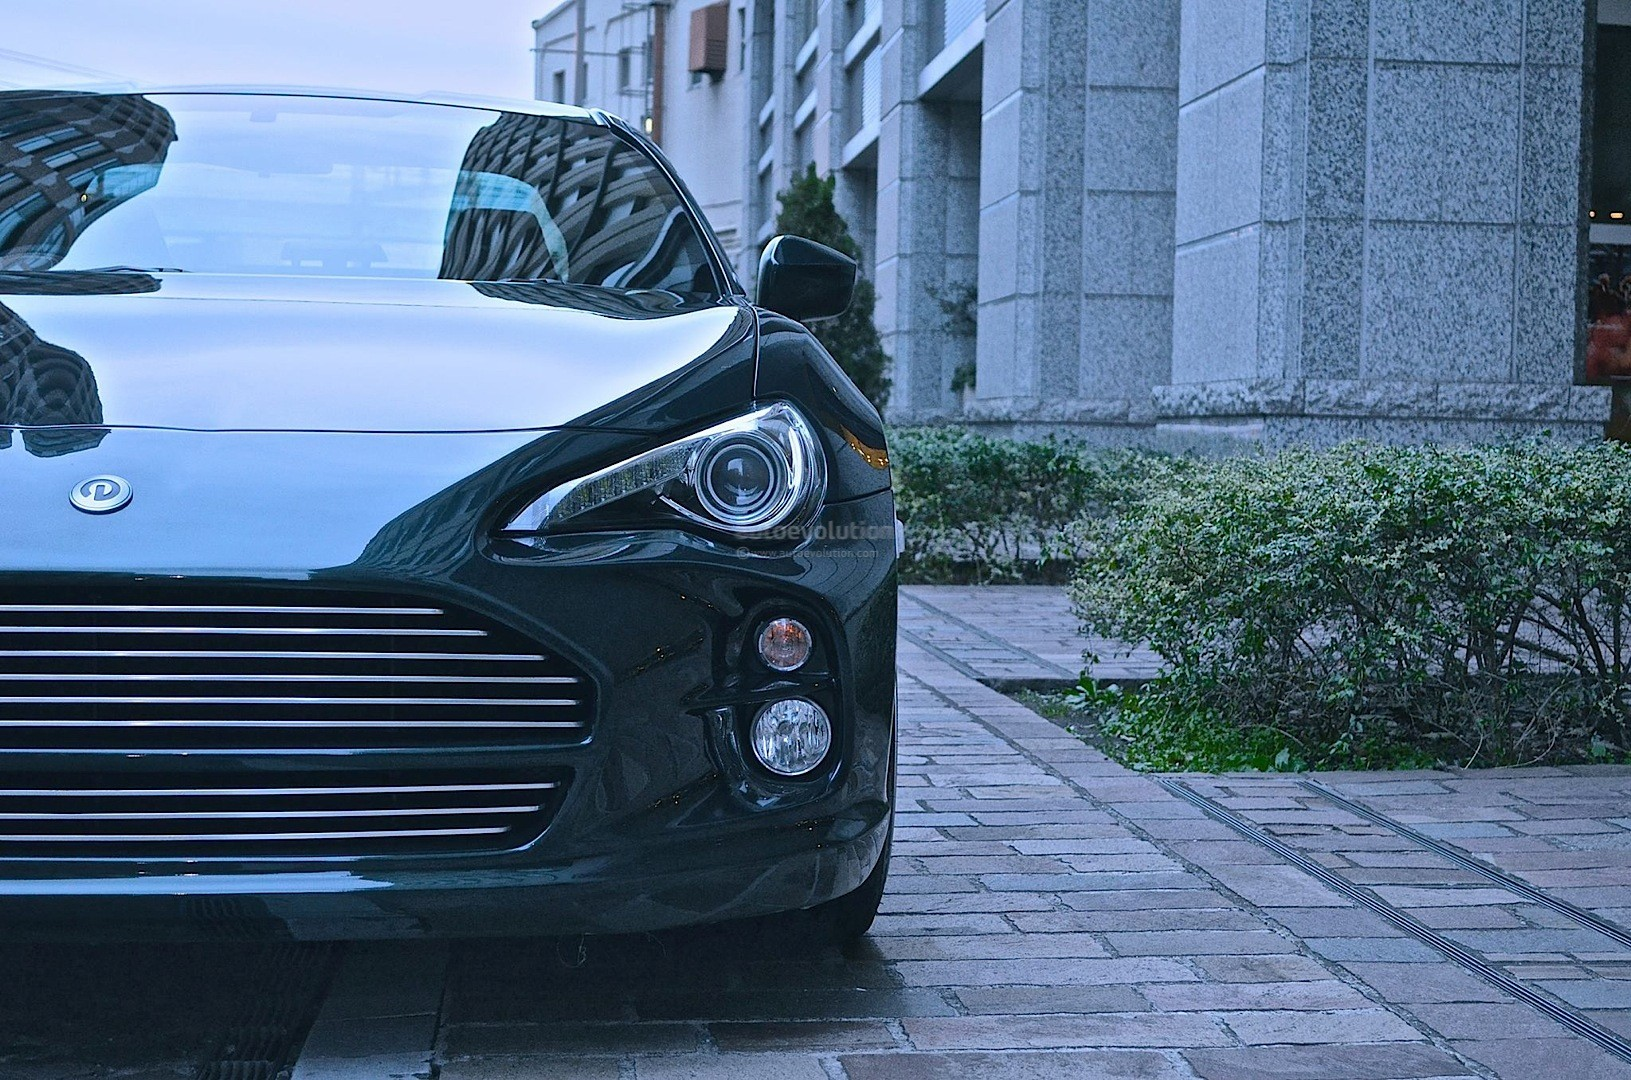 toyota-gt-86-vantage-by-damd-is-a-japanese-aston-martin-copy-video-photo-gallery_9